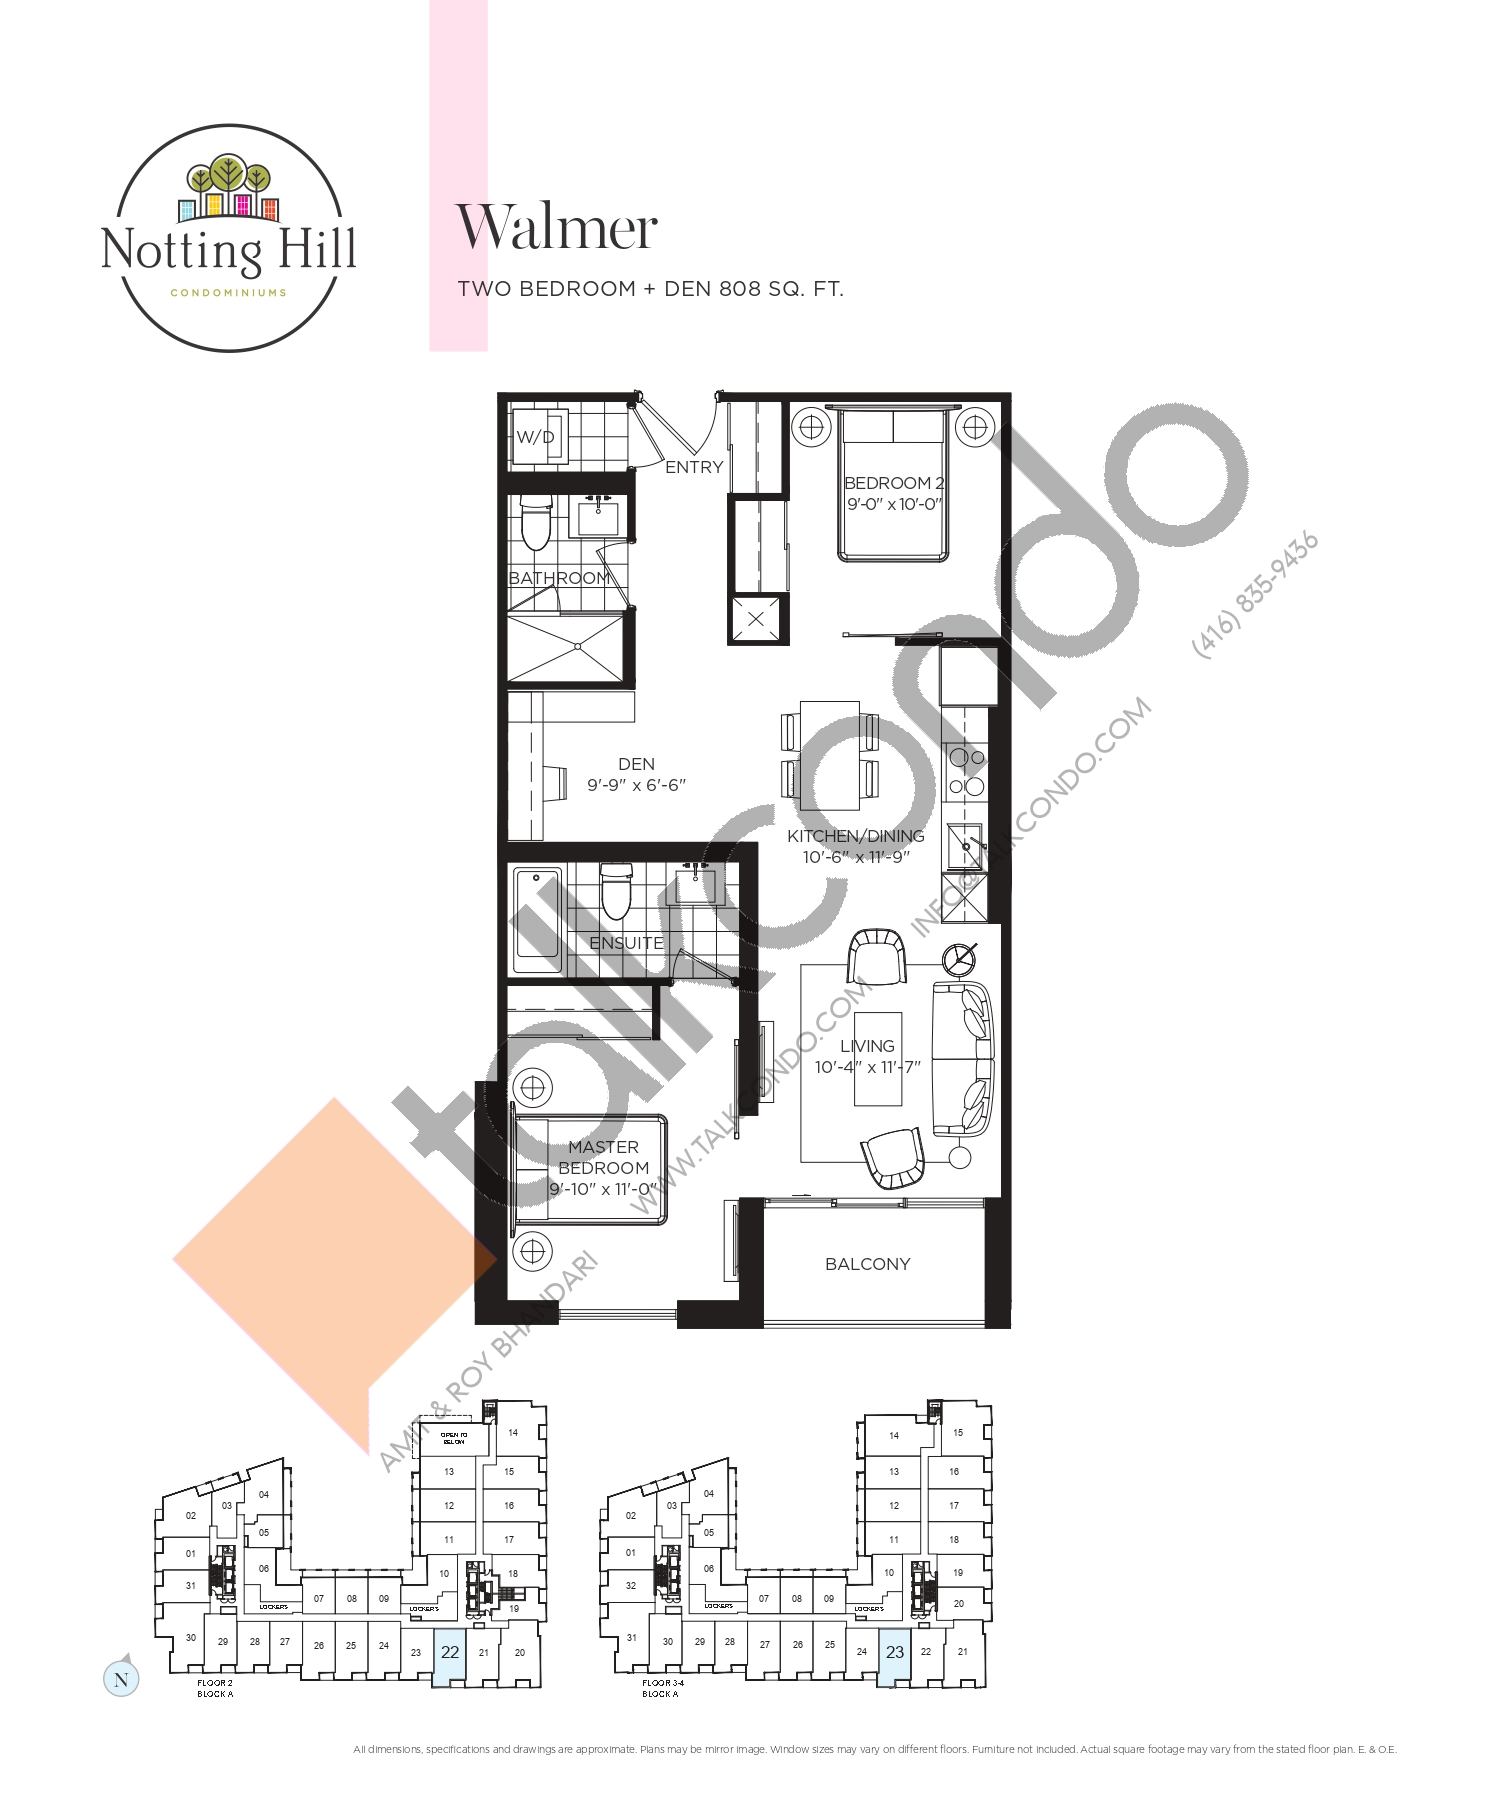 Walmer Floor Plan at Notting Hill Phase 2 Condos - 808 sq.ft